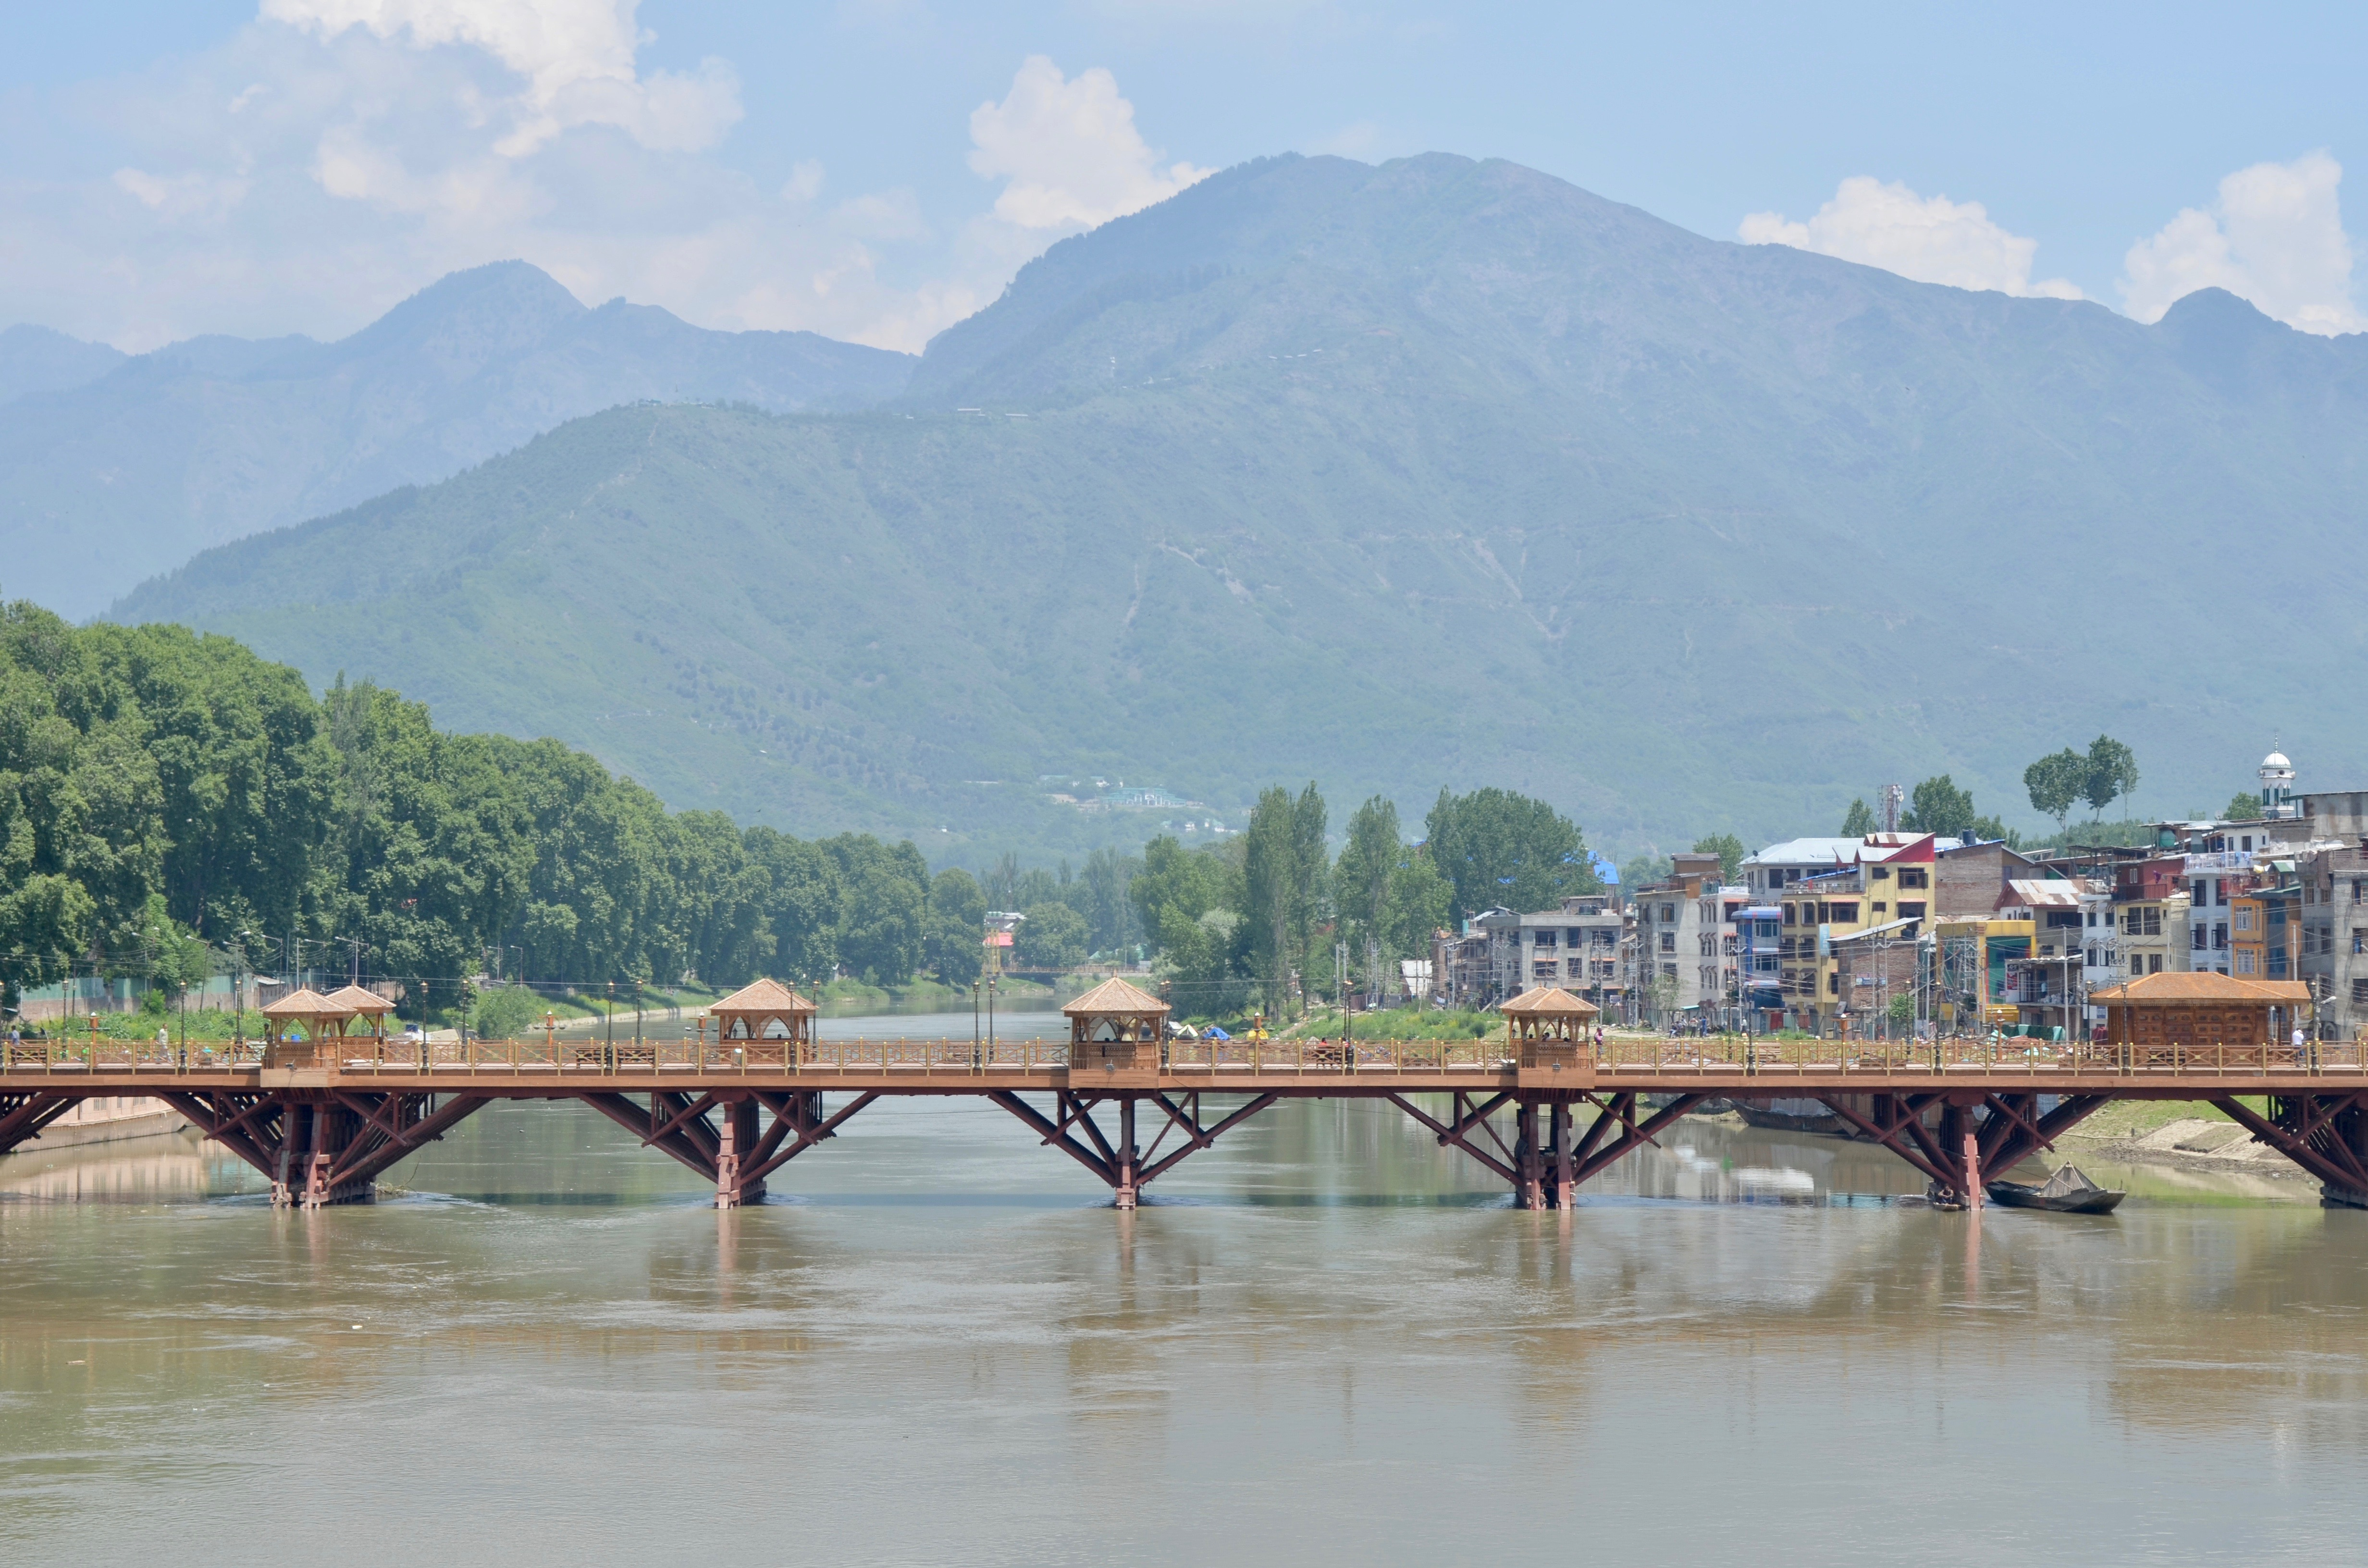 Indian Kashmir, tucked in the Himalayas, is a popular tourist destination, but a long spell of violence has kept visitors away from the region. (A. Pasricha/VOA)